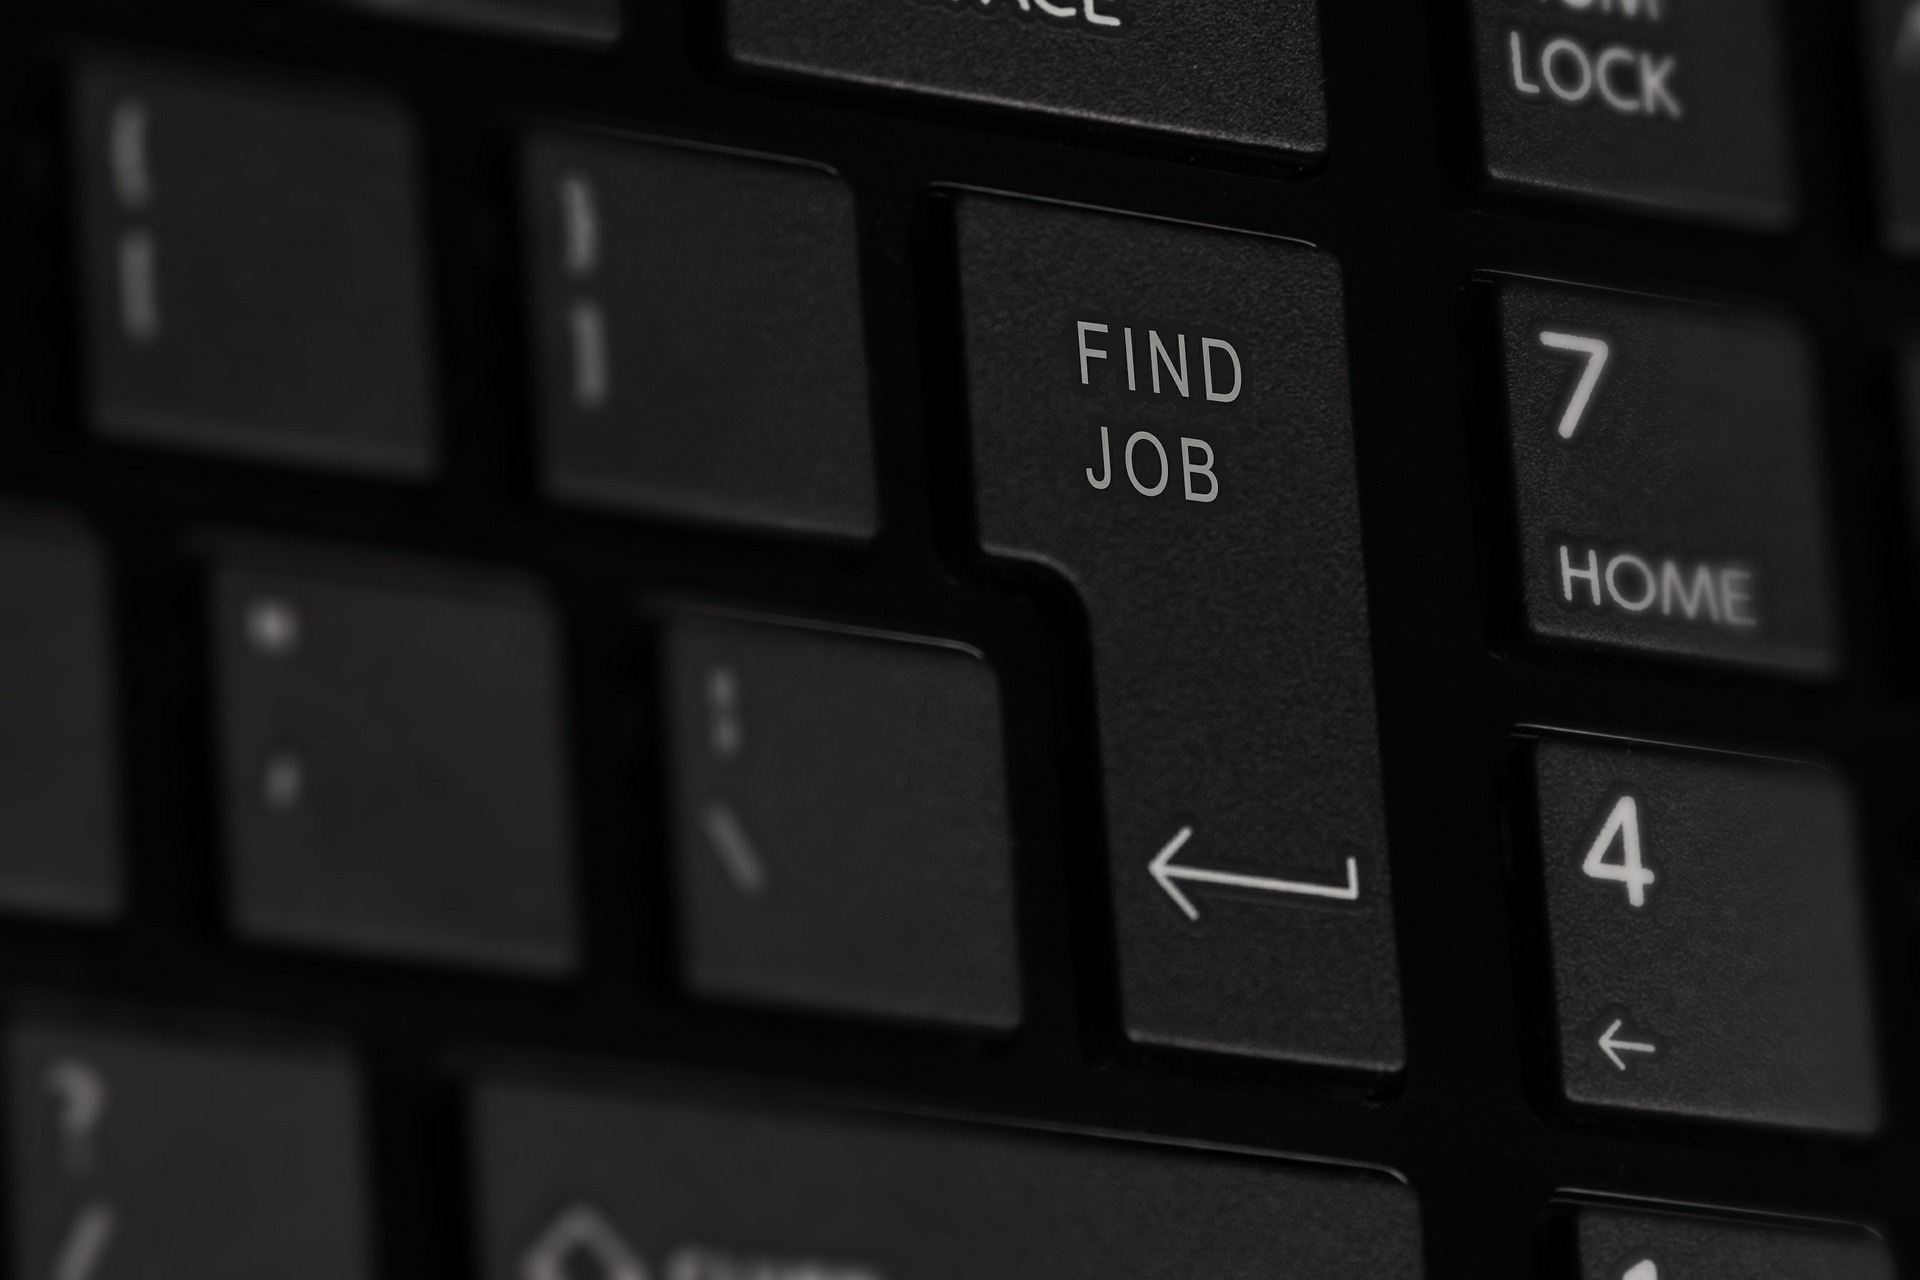 find a job button on keyboard